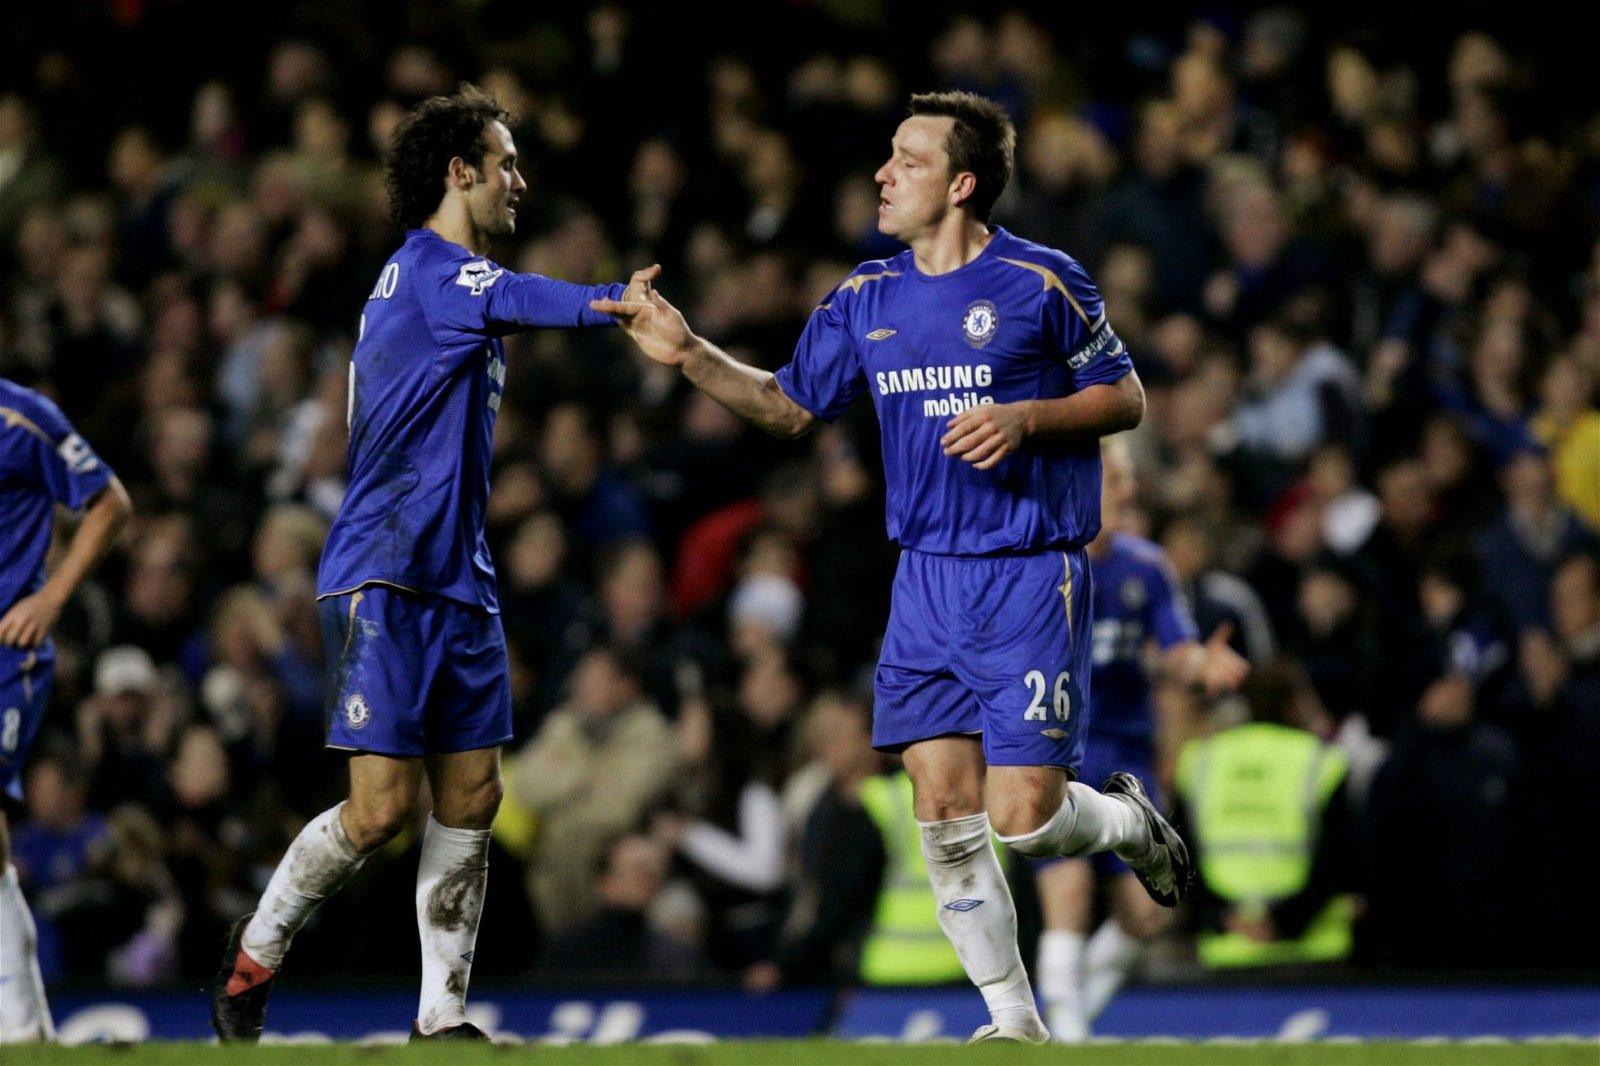 Ricardo Carvalho and John Terry shake hands